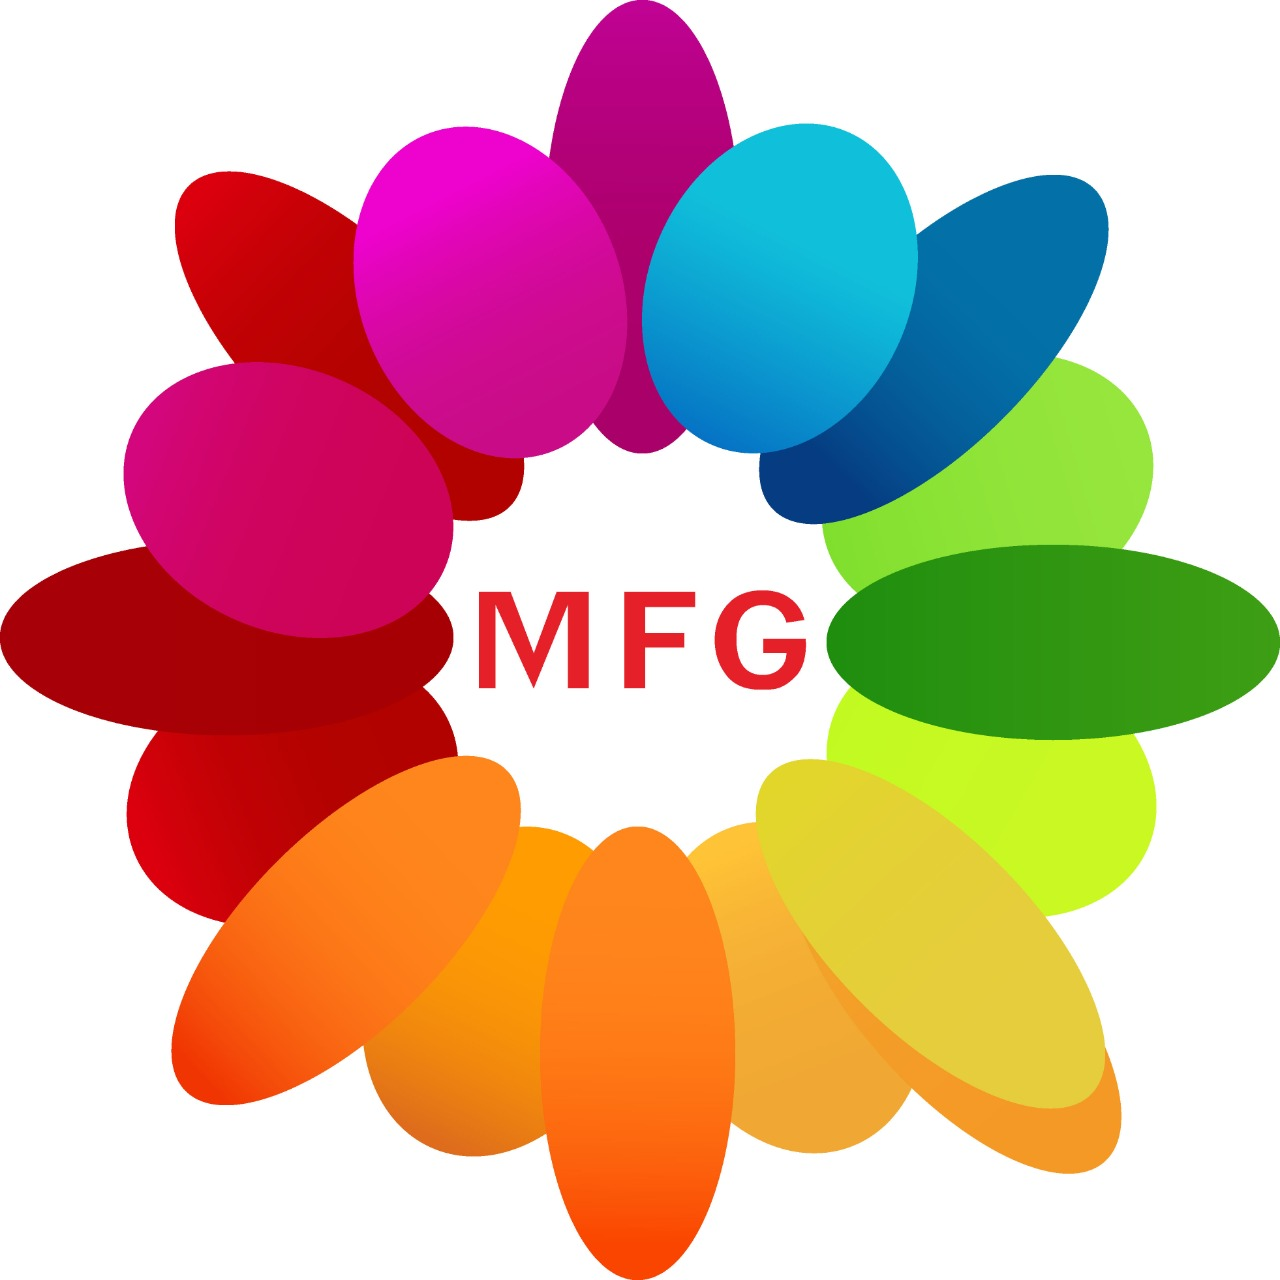 1 kg strawberry vanilla heart shape cake with bunch of 5 lilies with 1 feet height teddybear